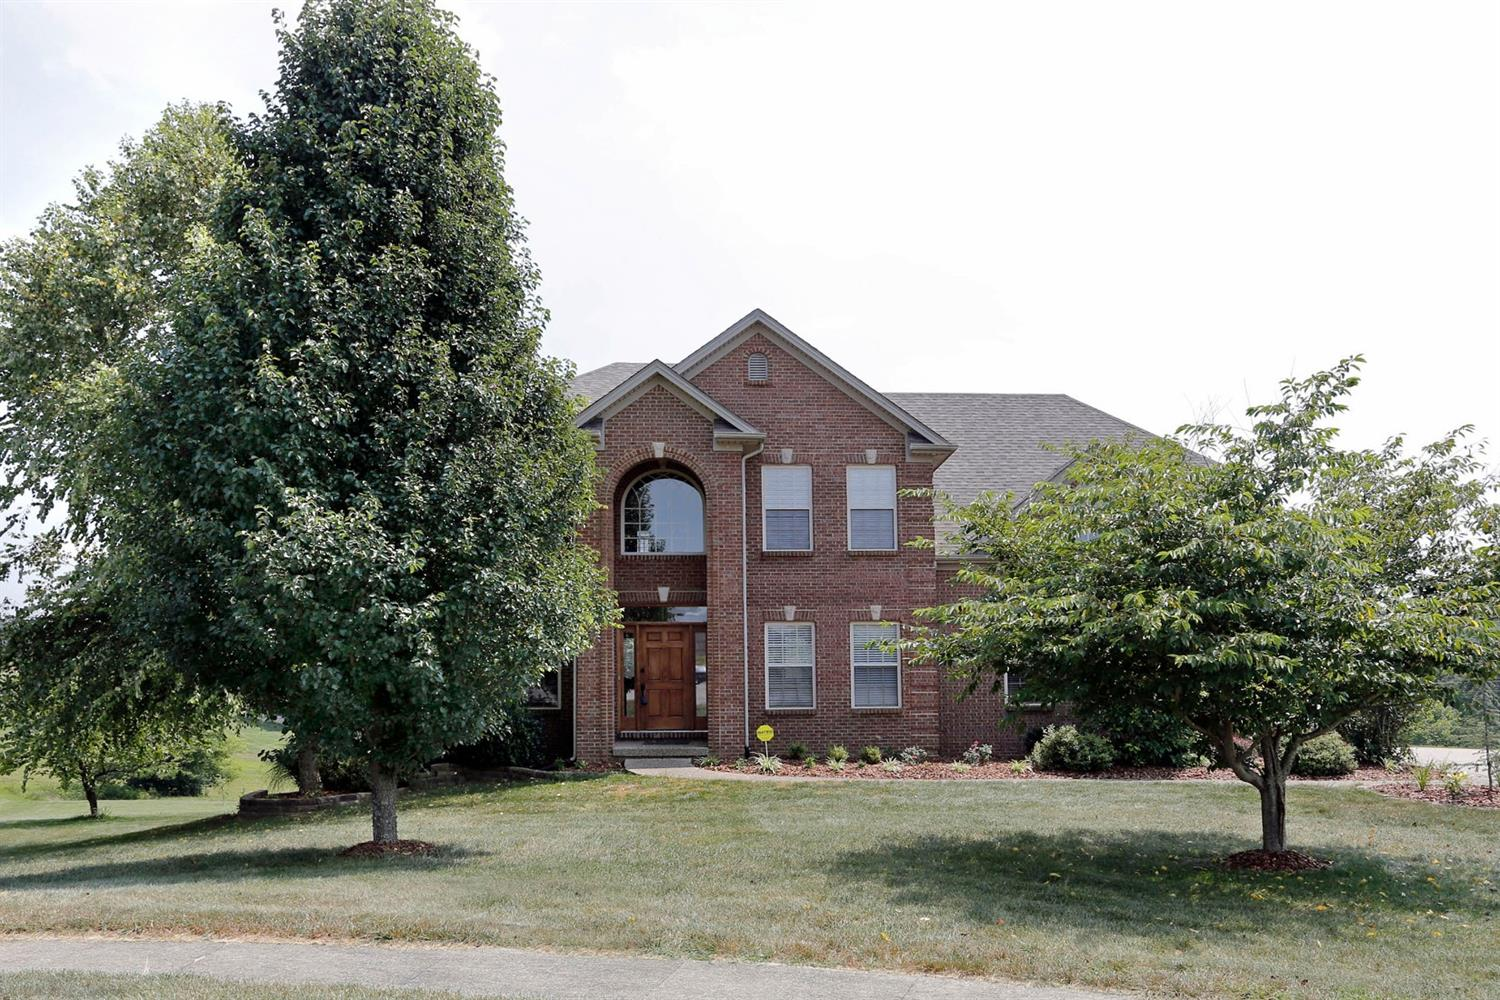 Beautiful%202%20story%205%20bedroom,%203.5%20bath%20home%20on%20a%20finished%20basement%20in%20the%20sought%20after%20gated%20Boone's%20Trace%20Golf%20community.%20%20The%20main%20level%20has%20a%20large%20open%20kitchen%20with%20lots%20of%20cabinets,%20counter%20space%20and%20a%20beautiful%20view.%20%20The%20great%20room%20boast%20built%20ins%20and%20a%20rock%20surround%20fireplace.%20A%20home%20office%20and%20dining%20room%20round%20out%20the%20main%20floor.%20%20The%20very%20large%20master%20is%20a%20perfect%20retreat%20at%20the%20end%20of%20a%20long%20day%20with%20double%20sinks,%20garden%20tub%20and%20huge%20closet%20you%20can't%20go%20wrong.%20%20The%20finished%20basement%20is%20perfect%20for%20quite%20nights,%20entertaining%20or%20guests.%20%20The%20large%20family%20room%20gives%20everyone%20plenty%20of%20elbow%20room.%20%20The%20gated%20community%20offers%20pool,%20tennis%20and%20basketball%20courts%20and%20clubhouse.%20You%20can't%20beat%20the%20location,%2015%20minutes%20to%20Lexington%20or%20Richmond.%20%20Don't%20wait,%20make%20the%20call.%20%20Let's%20Talk!